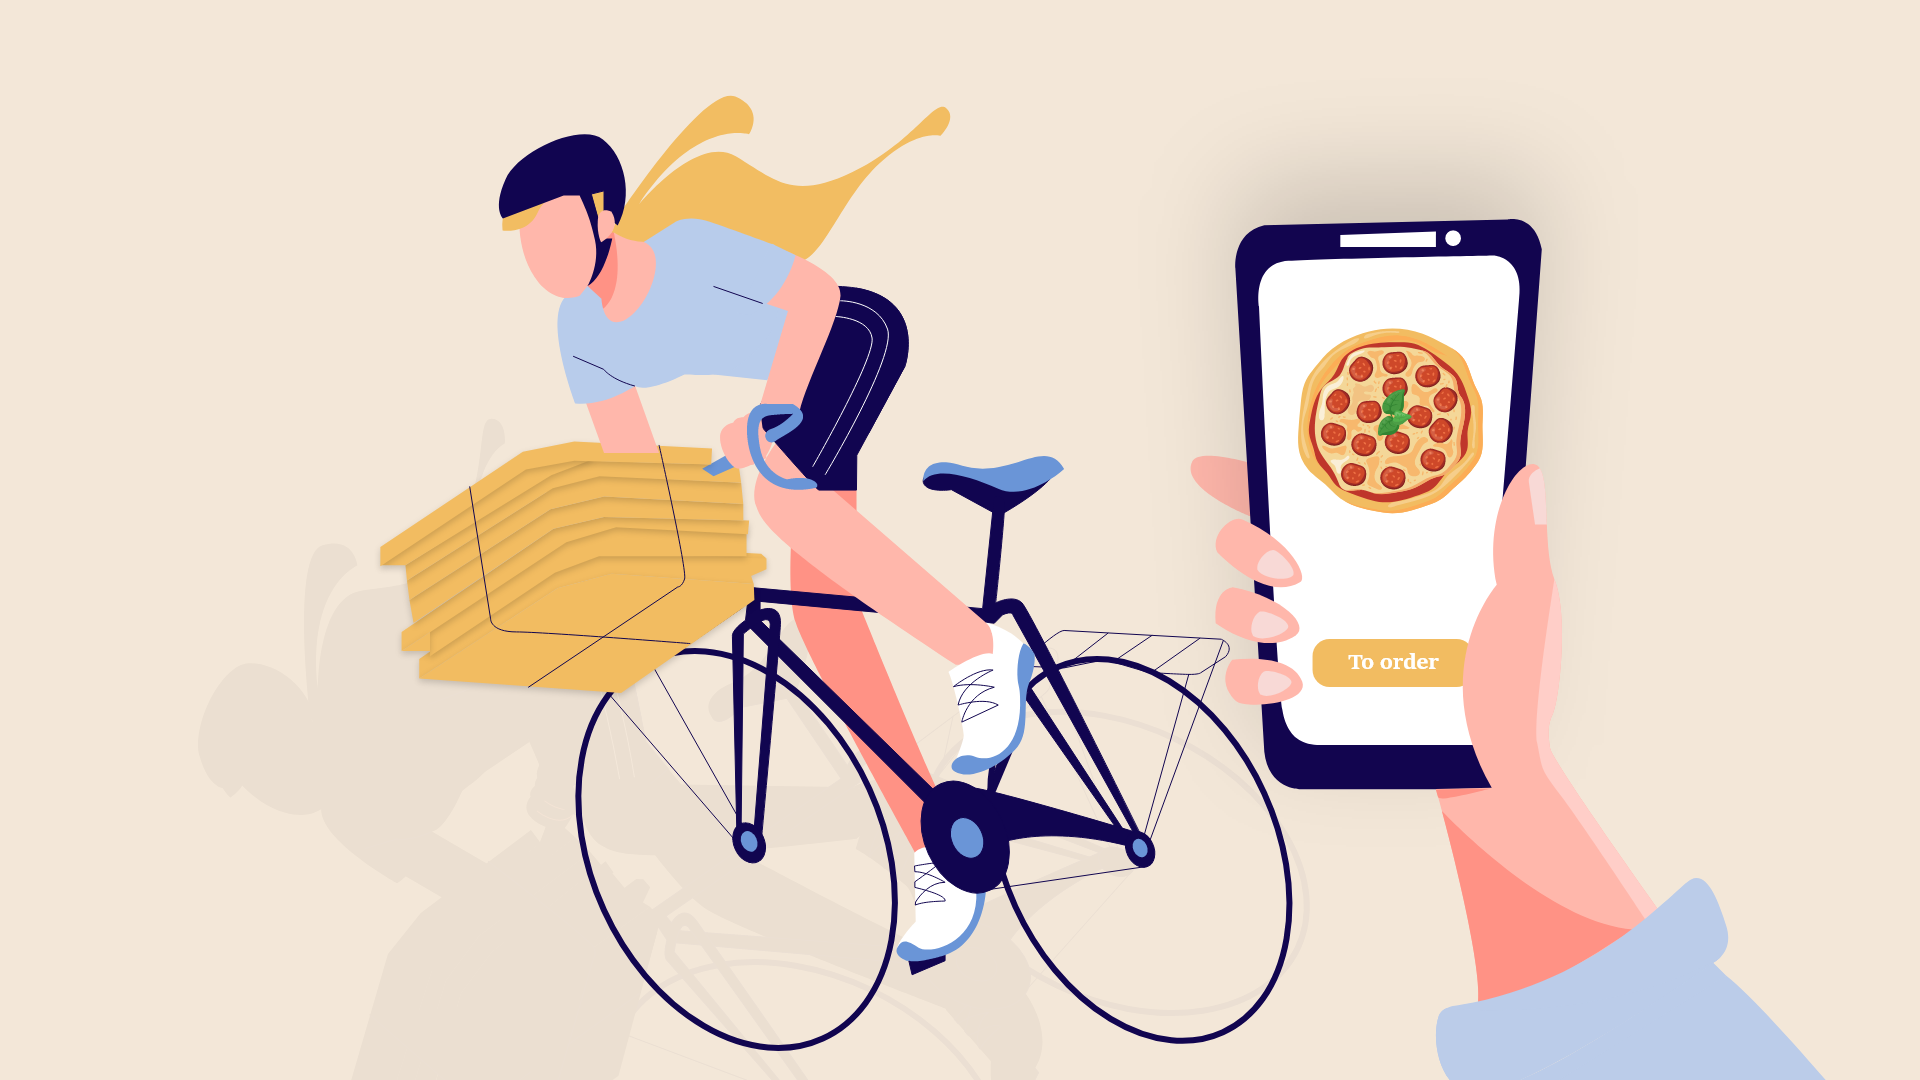 How to Create Food Delivery App